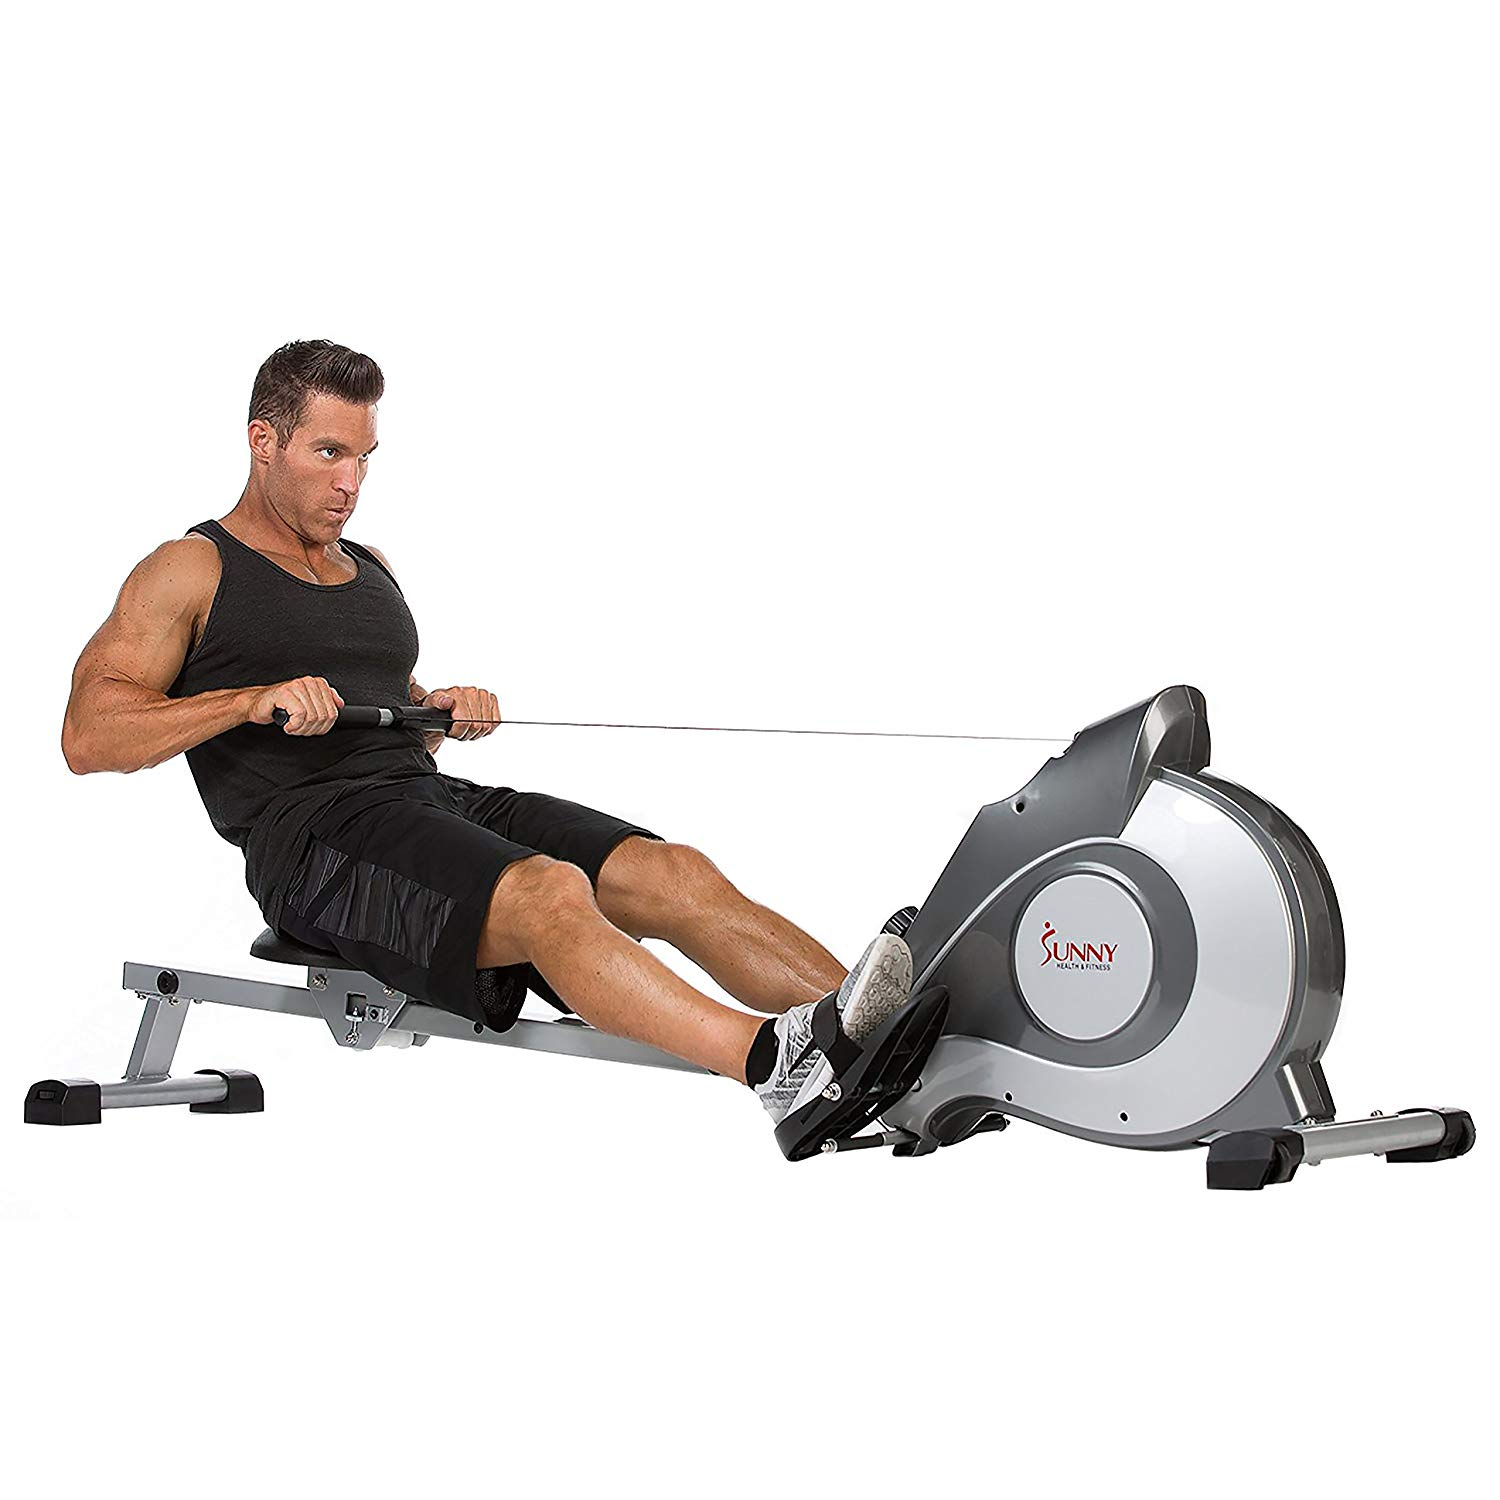 Best Place To Buy A Rowing Machine